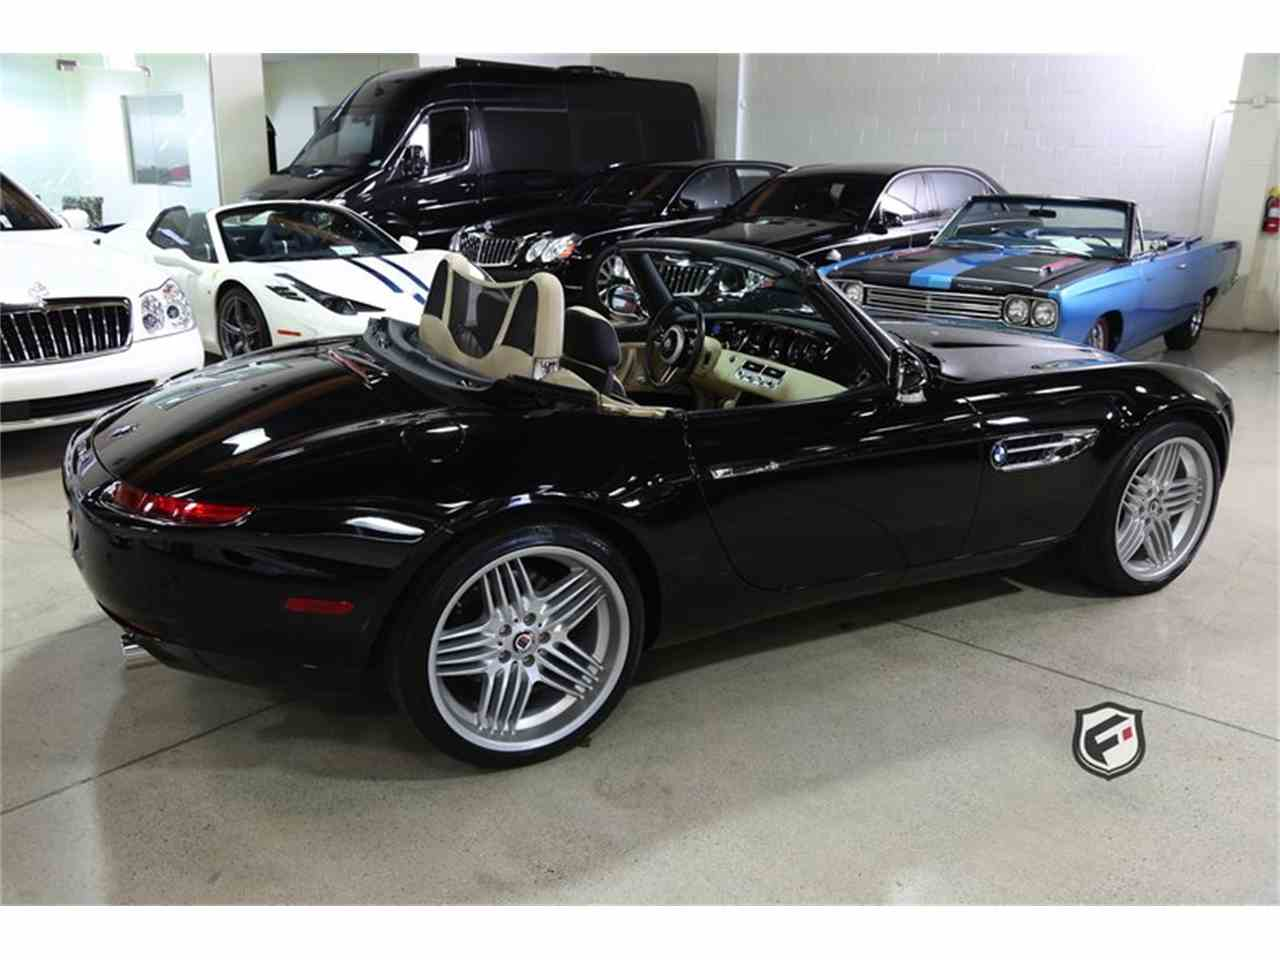 Large Picture of '03 BMW Z8 Alpina - $249,900.00 - IT3N